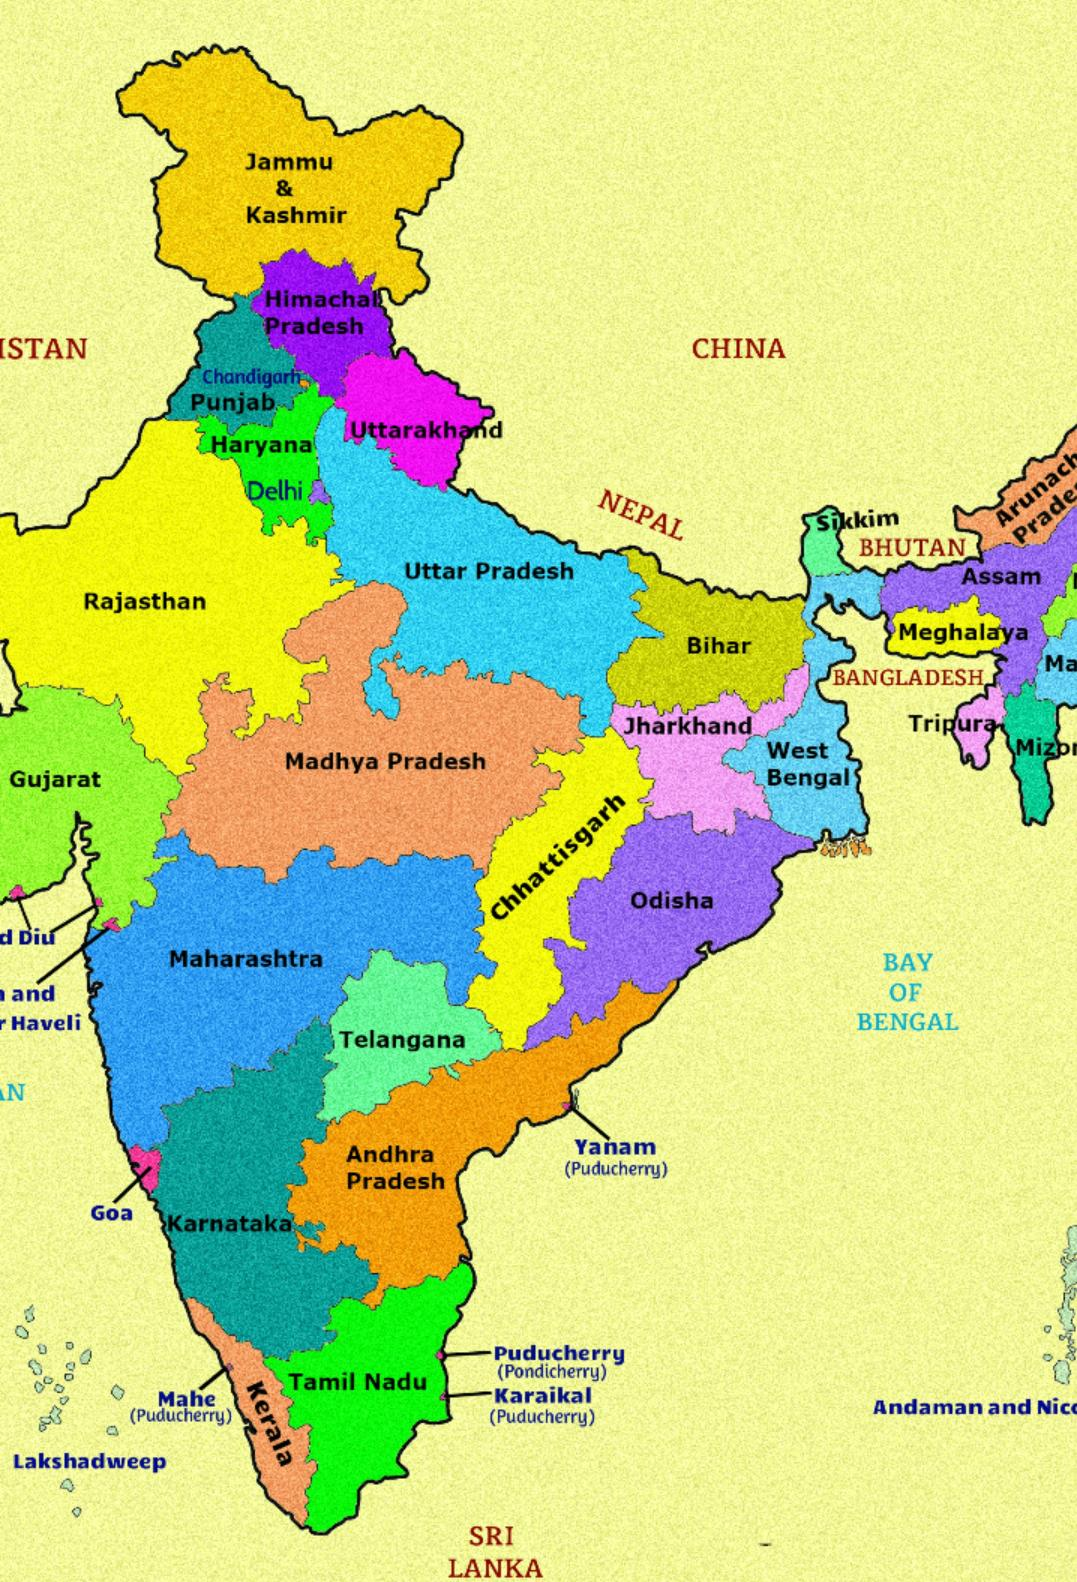 India Map & Capitals for Android - APK Download on ireland map, china map, new zealand map, canada map, australia map, greece map, portugal map, norway map, arabian sea map, brazil map, europe map, karnataka map, poland map, czech republic map, california map, italy map, argentina map, germany map, maharashtra map, texas map, korea map, sri lanka map, thailand map, iceland map, time zone map, cuba map, russia map, japan map, andhra pradesh map, france map, malaysia map, africa map, croatia map, egypt map, indian subcontinent map, spain map, cyprus map,